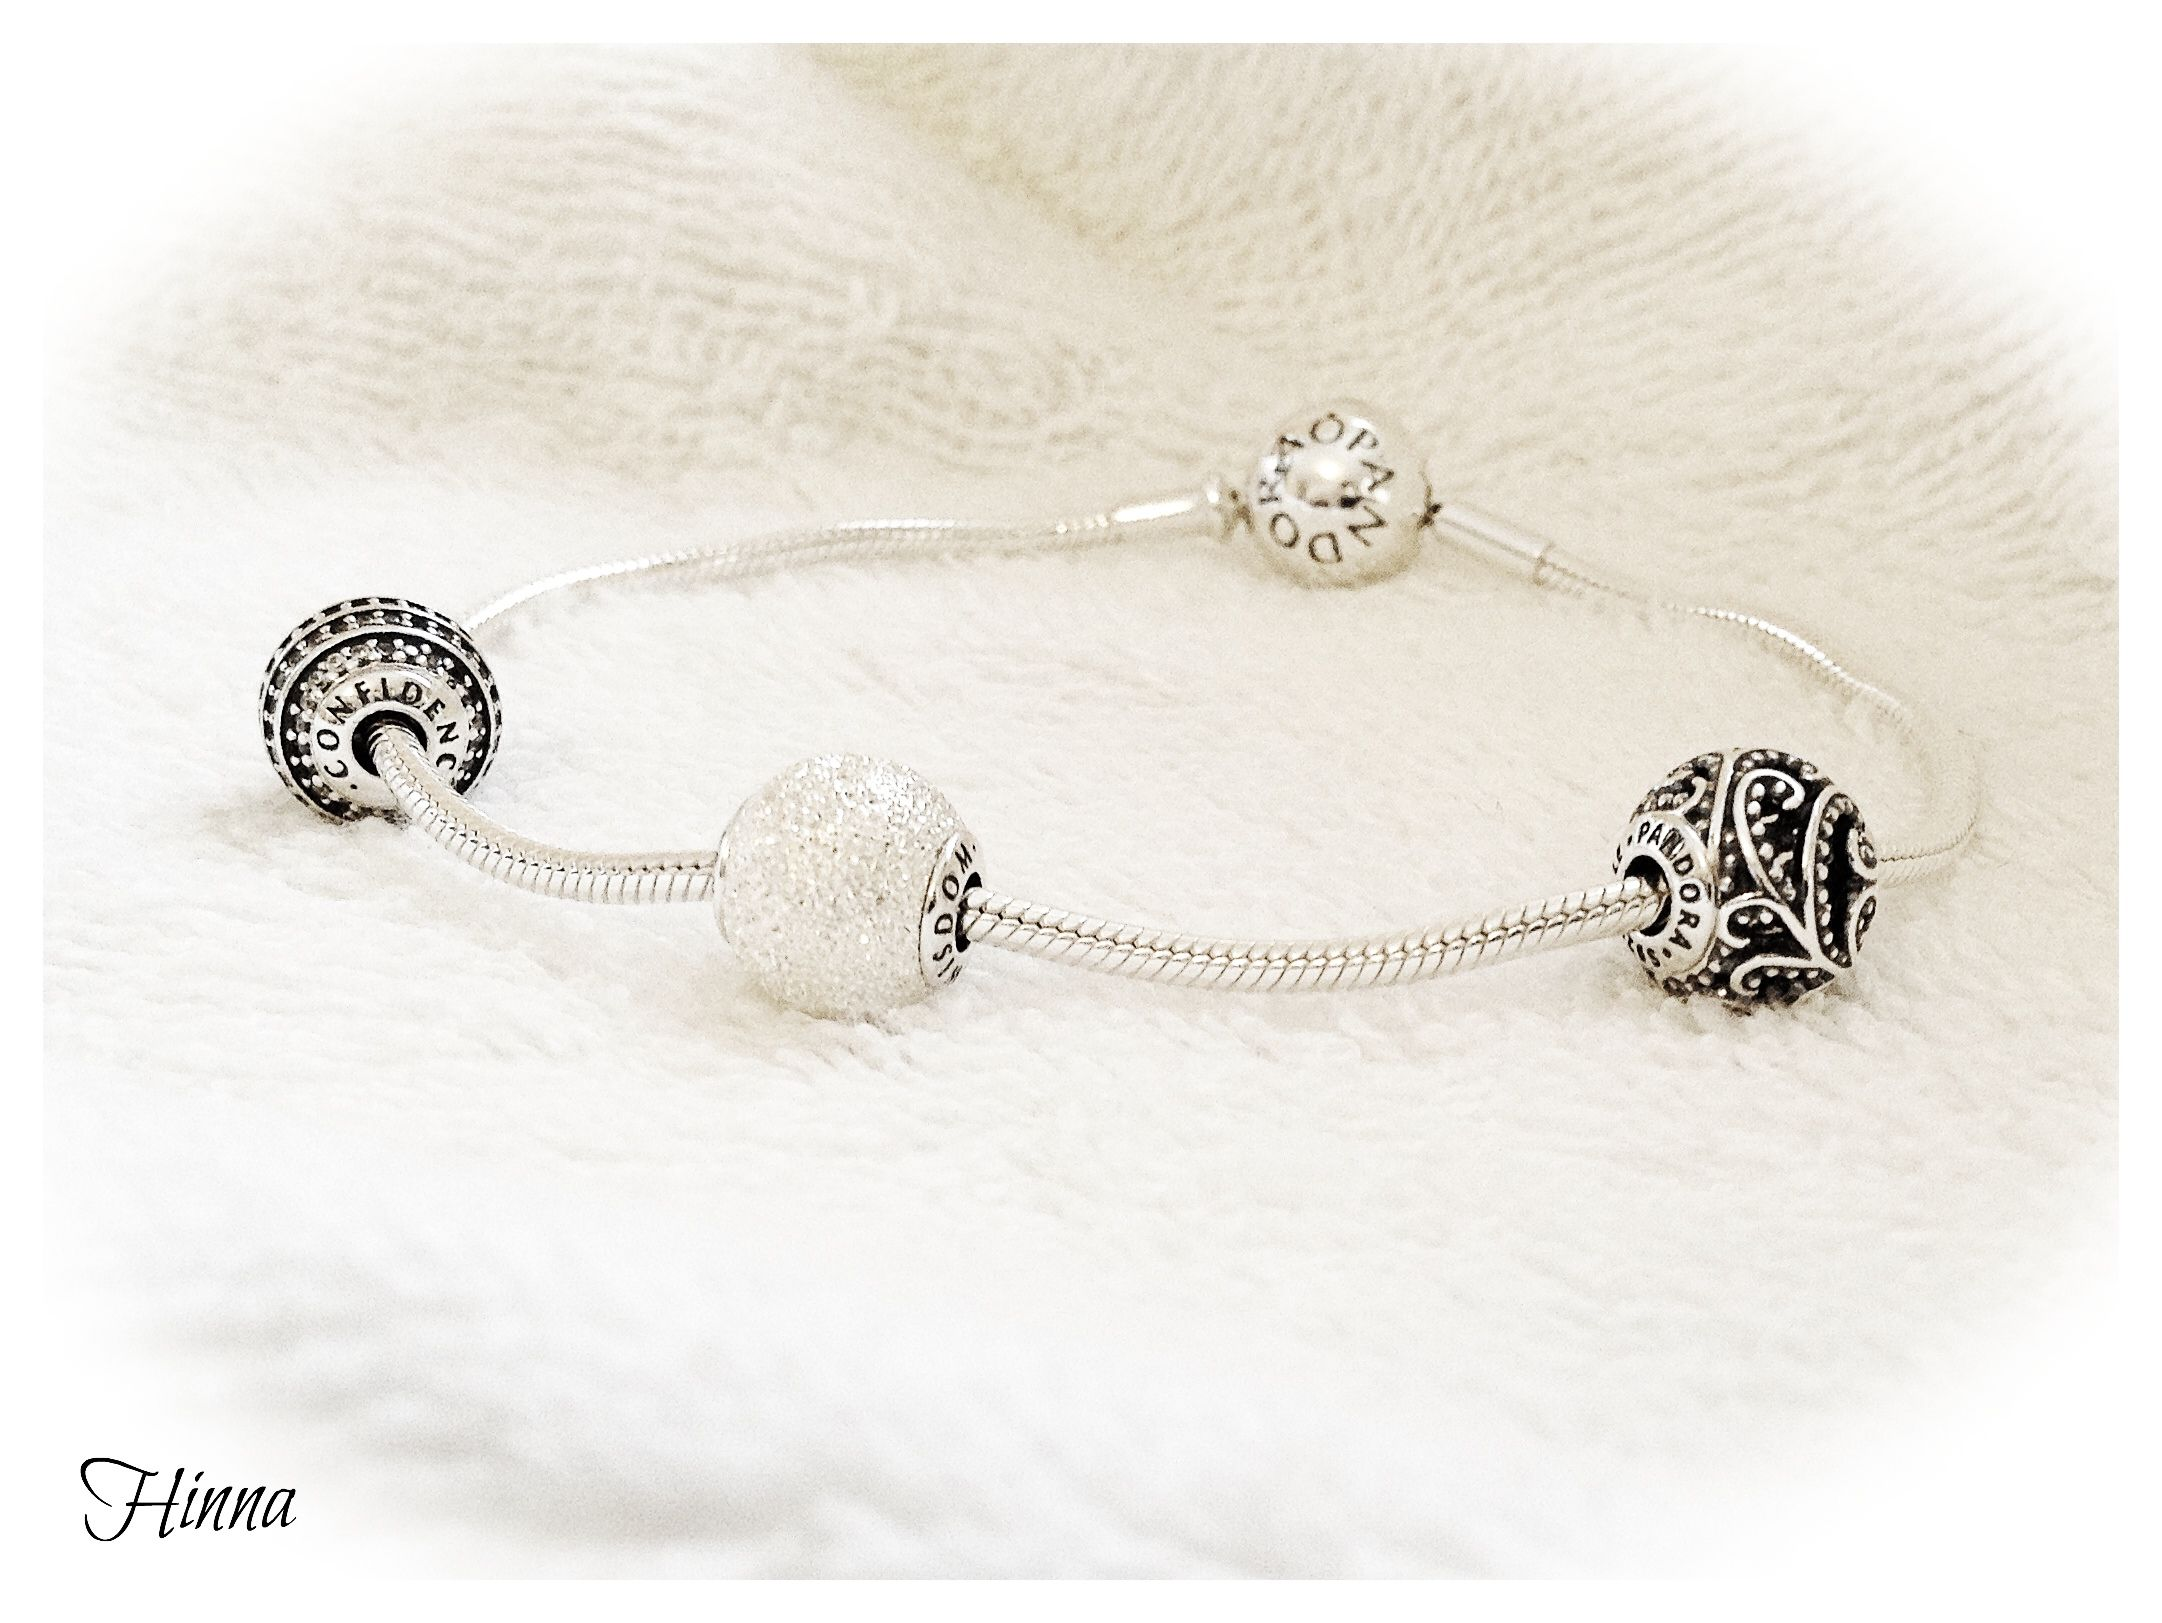 Find This Pin And More On We Love Your Pandora Style! My Pandora Essence  Bracelet